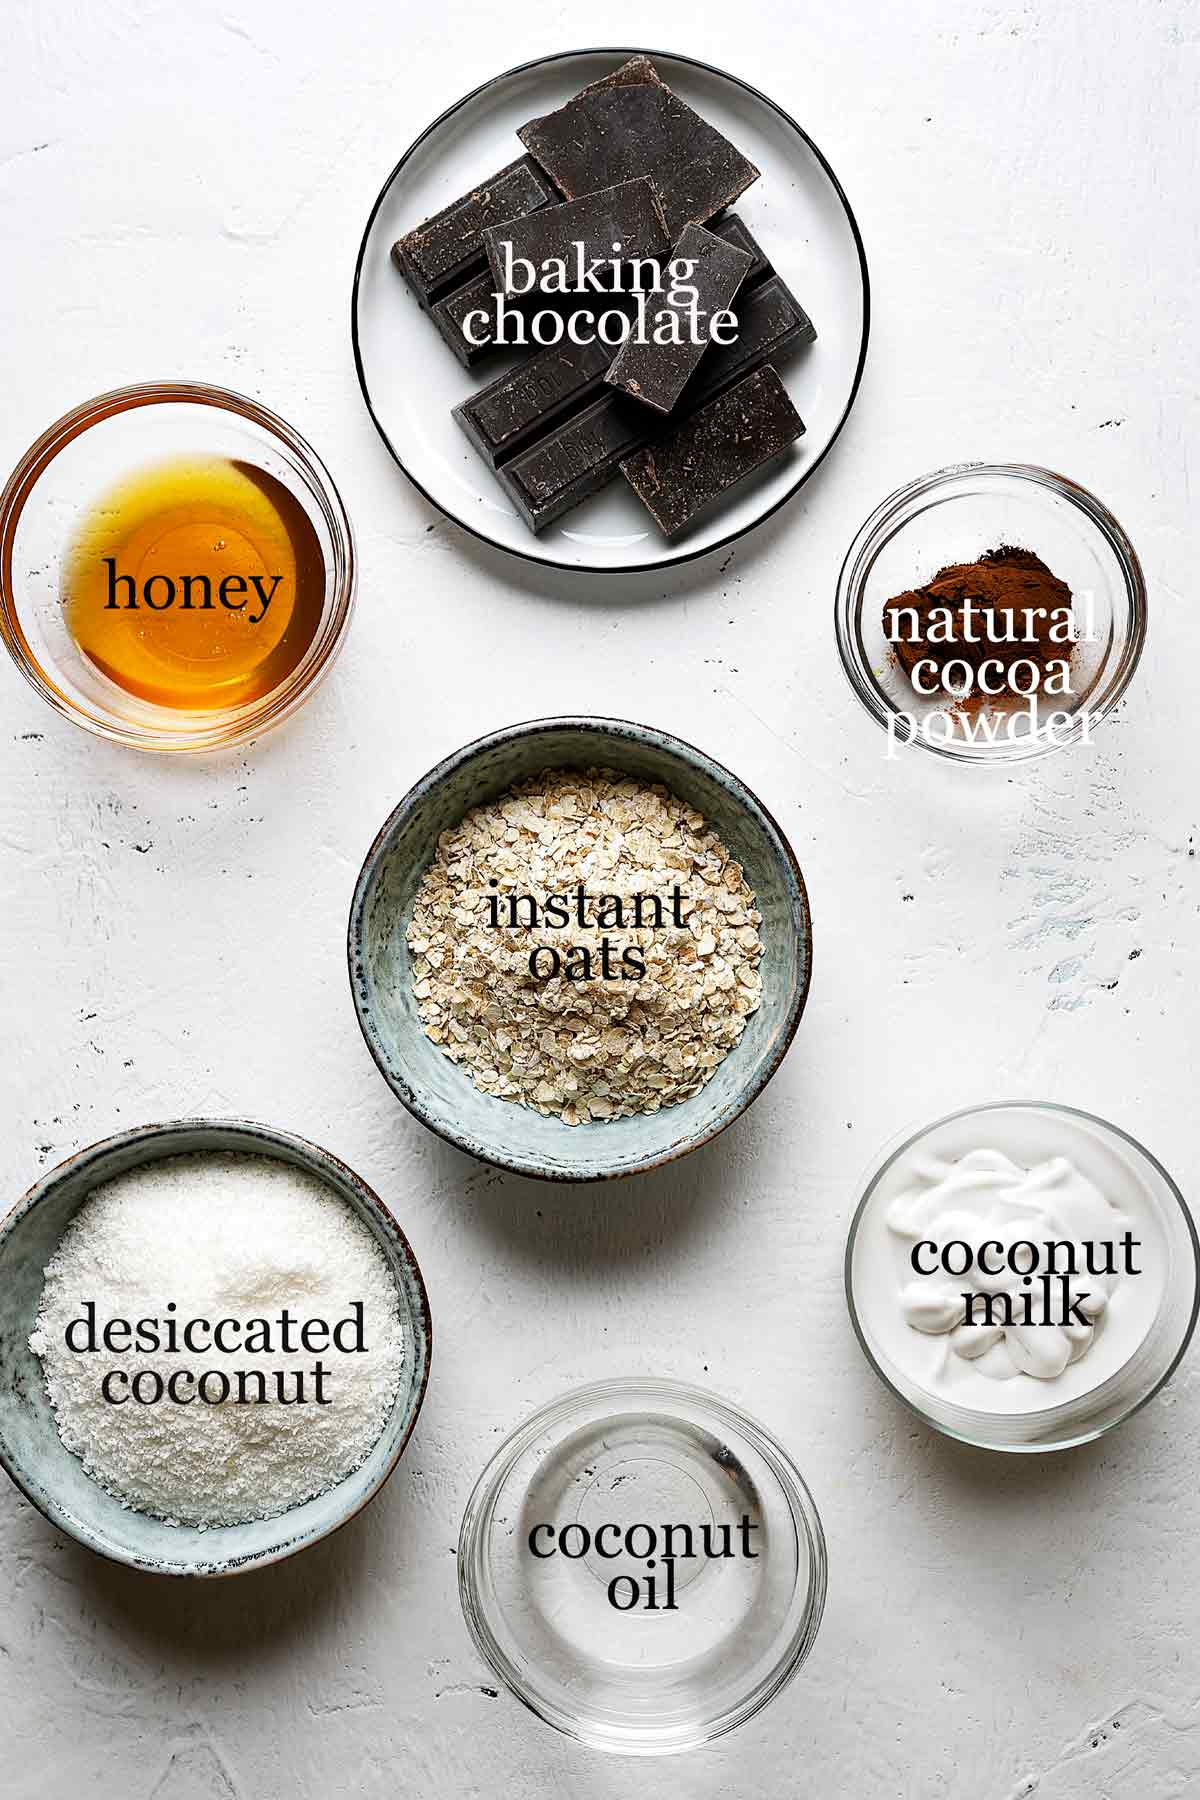 Ingredients for healthy chocolate coconut tarts